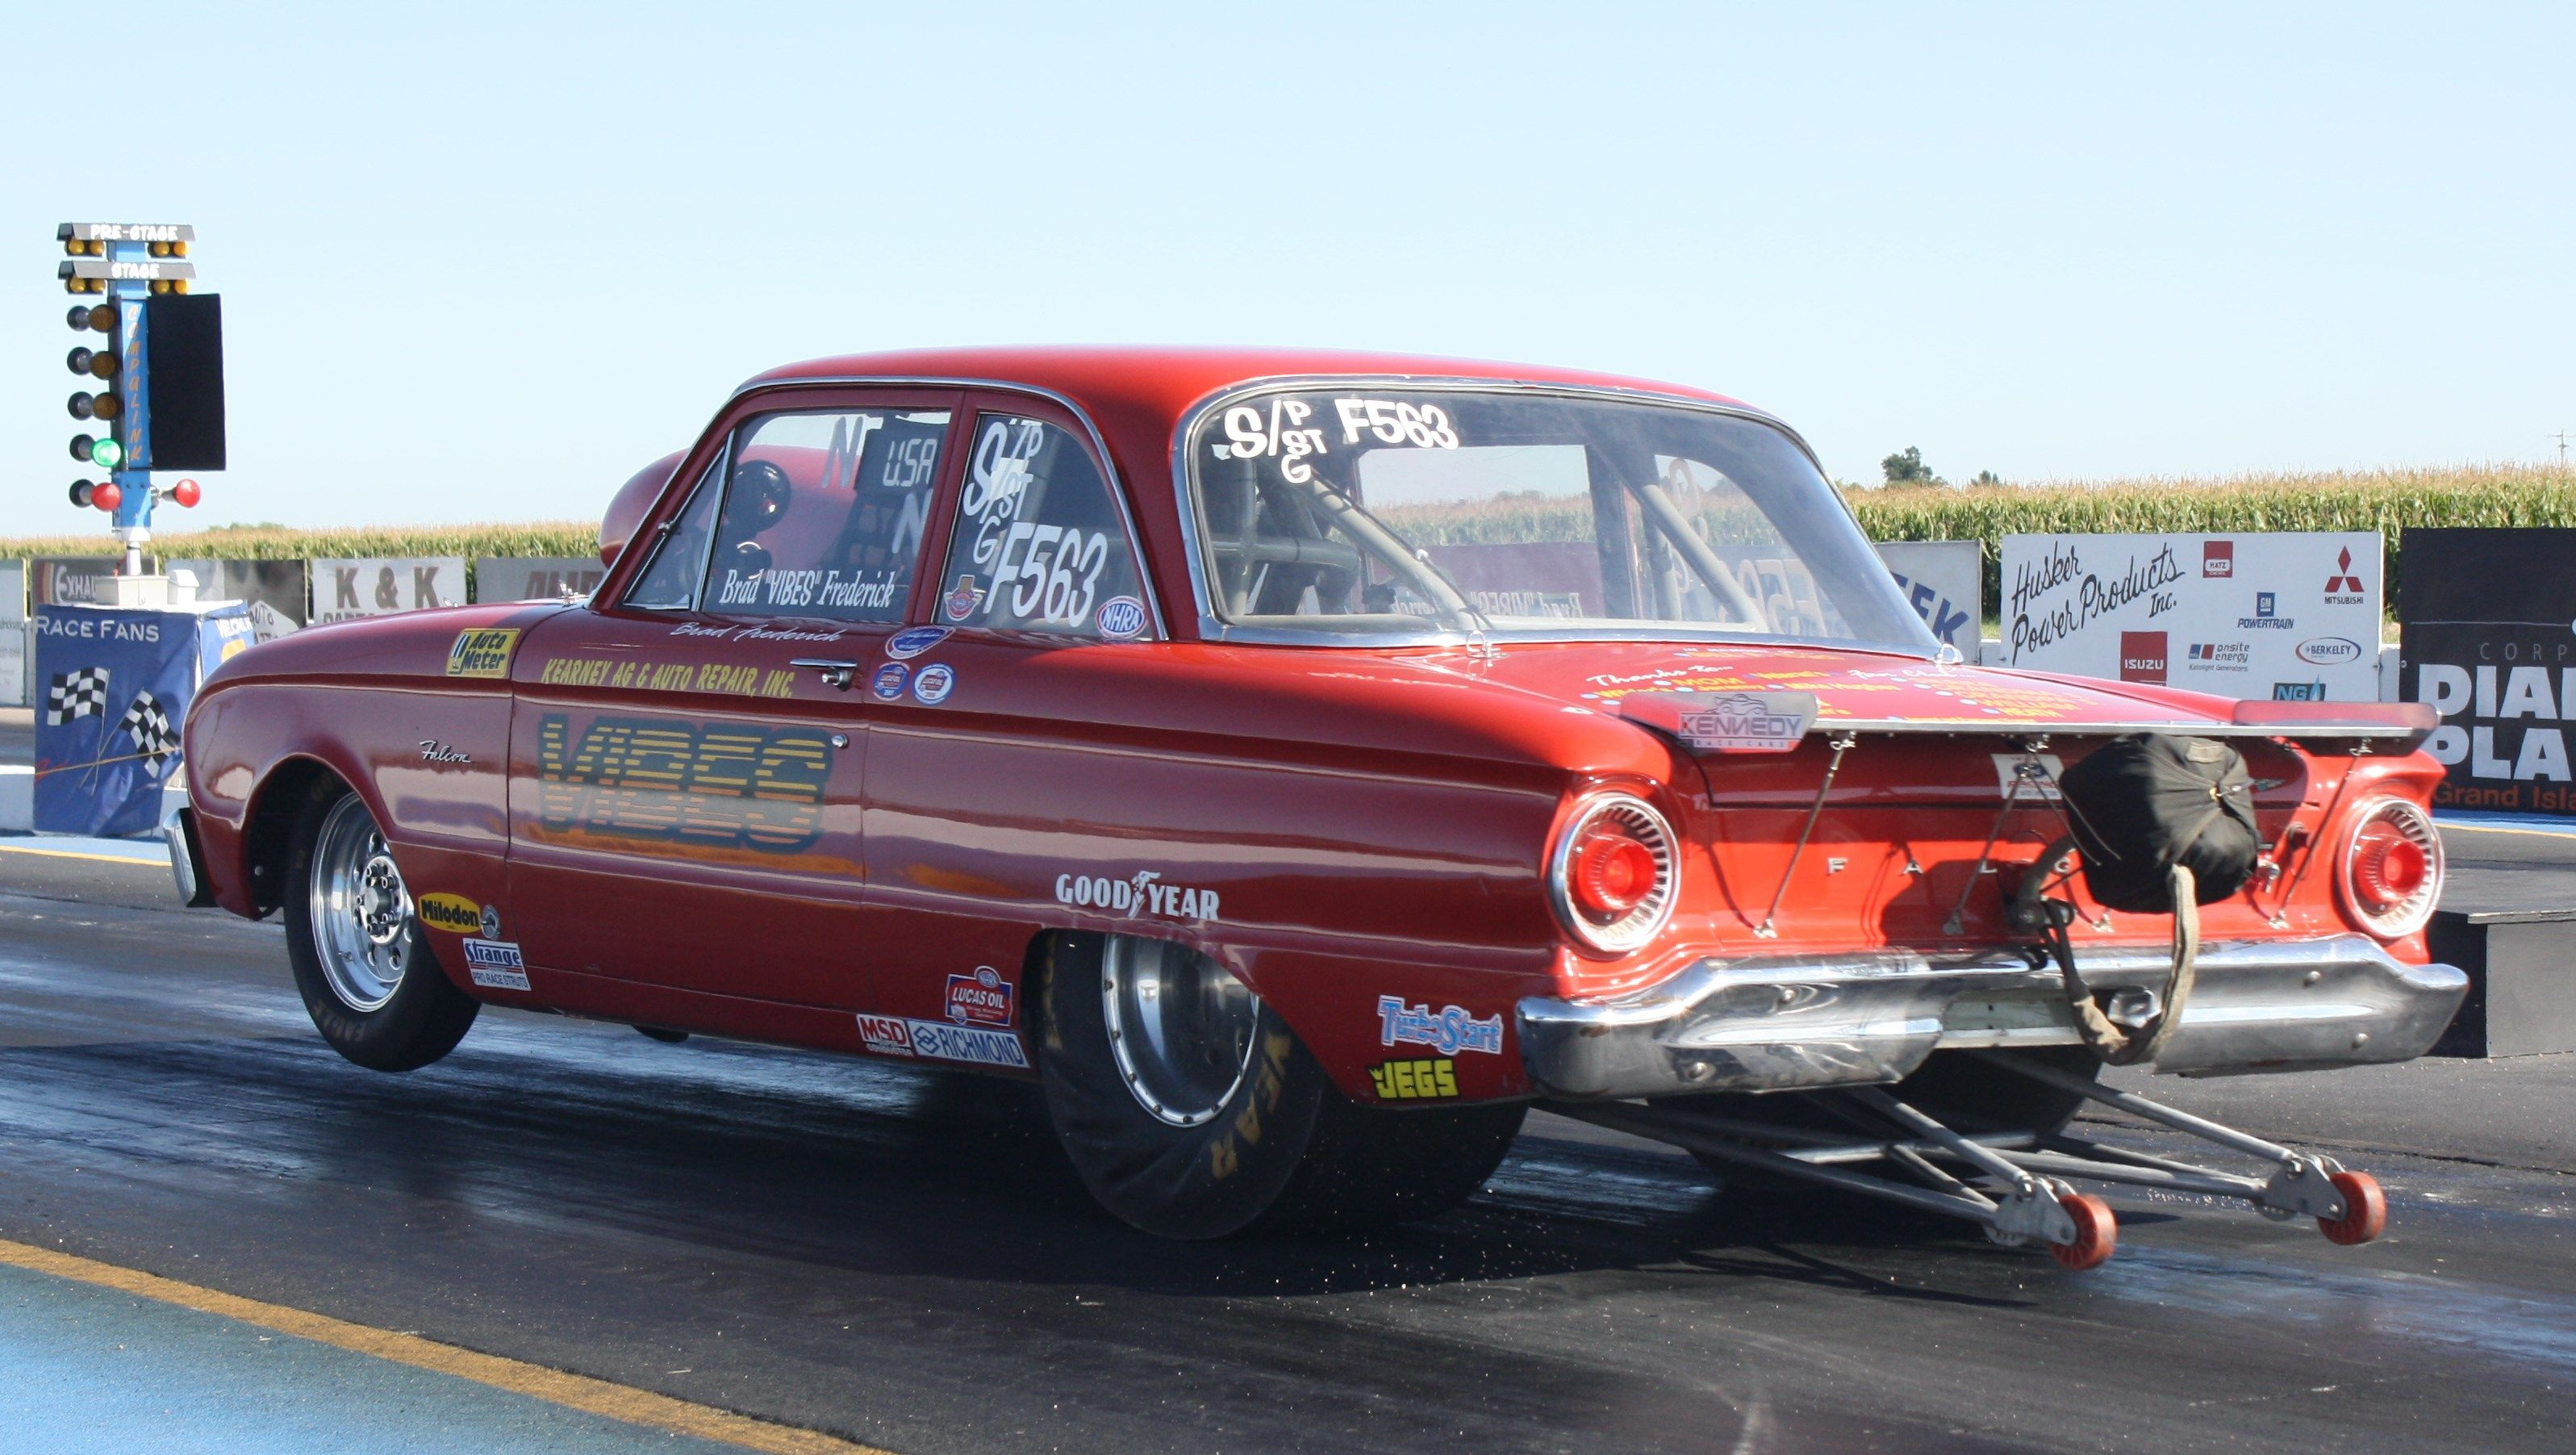 1962 Ford Falcon Launching Wheels Up Maintenance Of Old Vehicles The Material For New Cogs Casters Gears Pads Cou Drag Racing Cars Drag Racing Old Race Cars